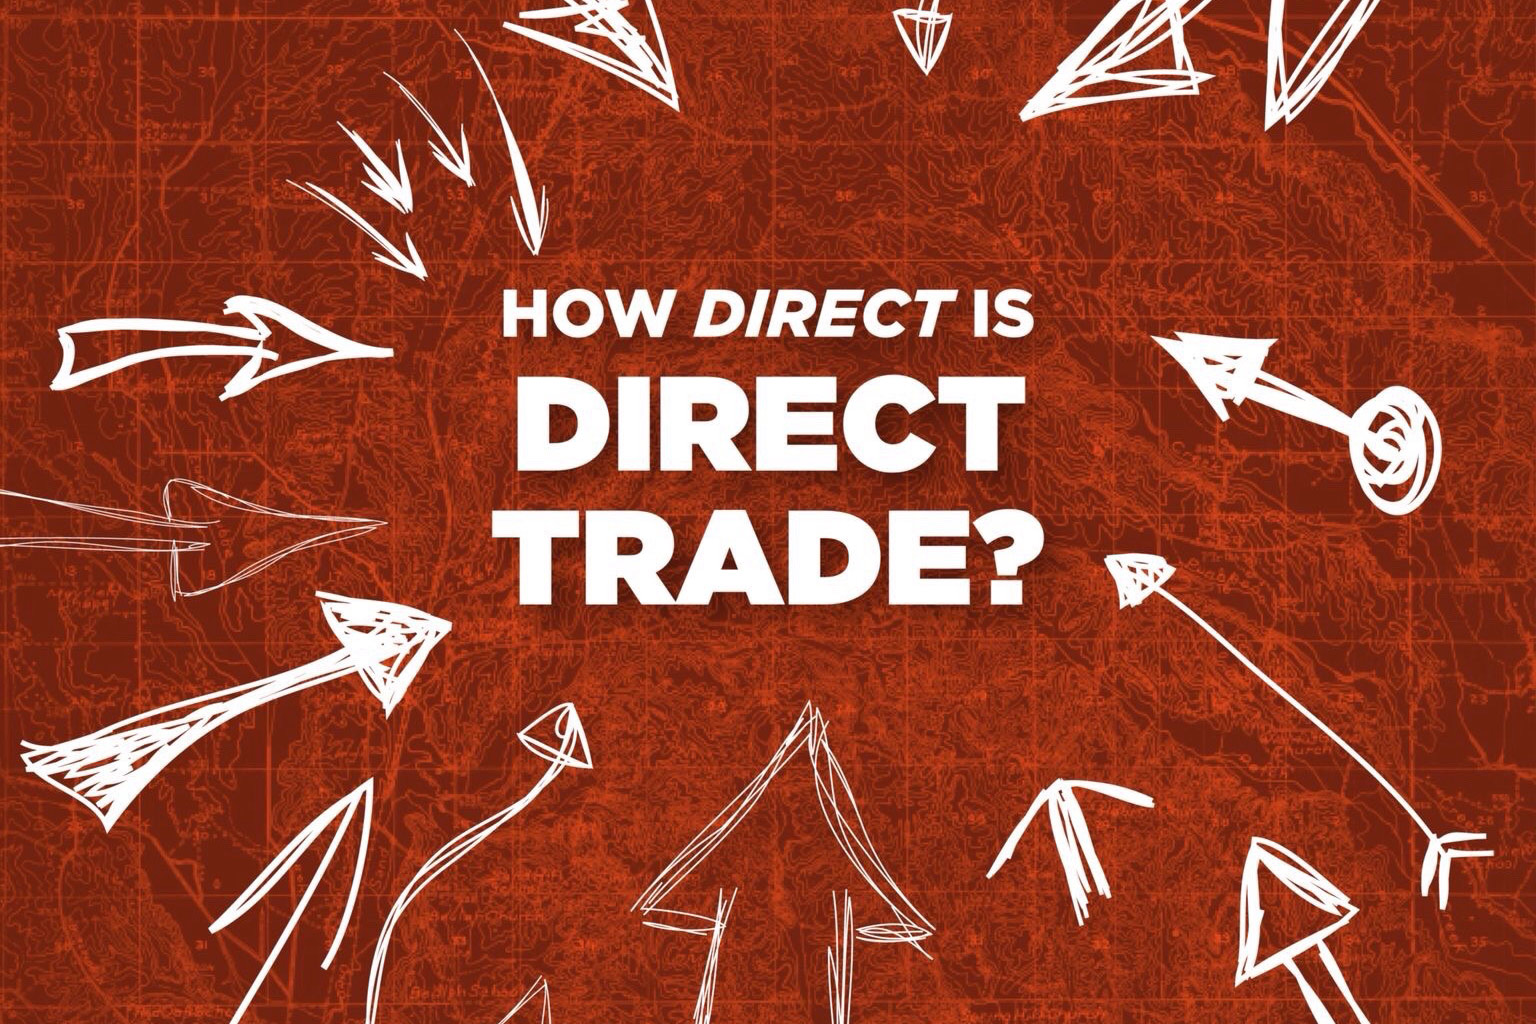 How Direct is Direct Trade? Featuring Herkimer